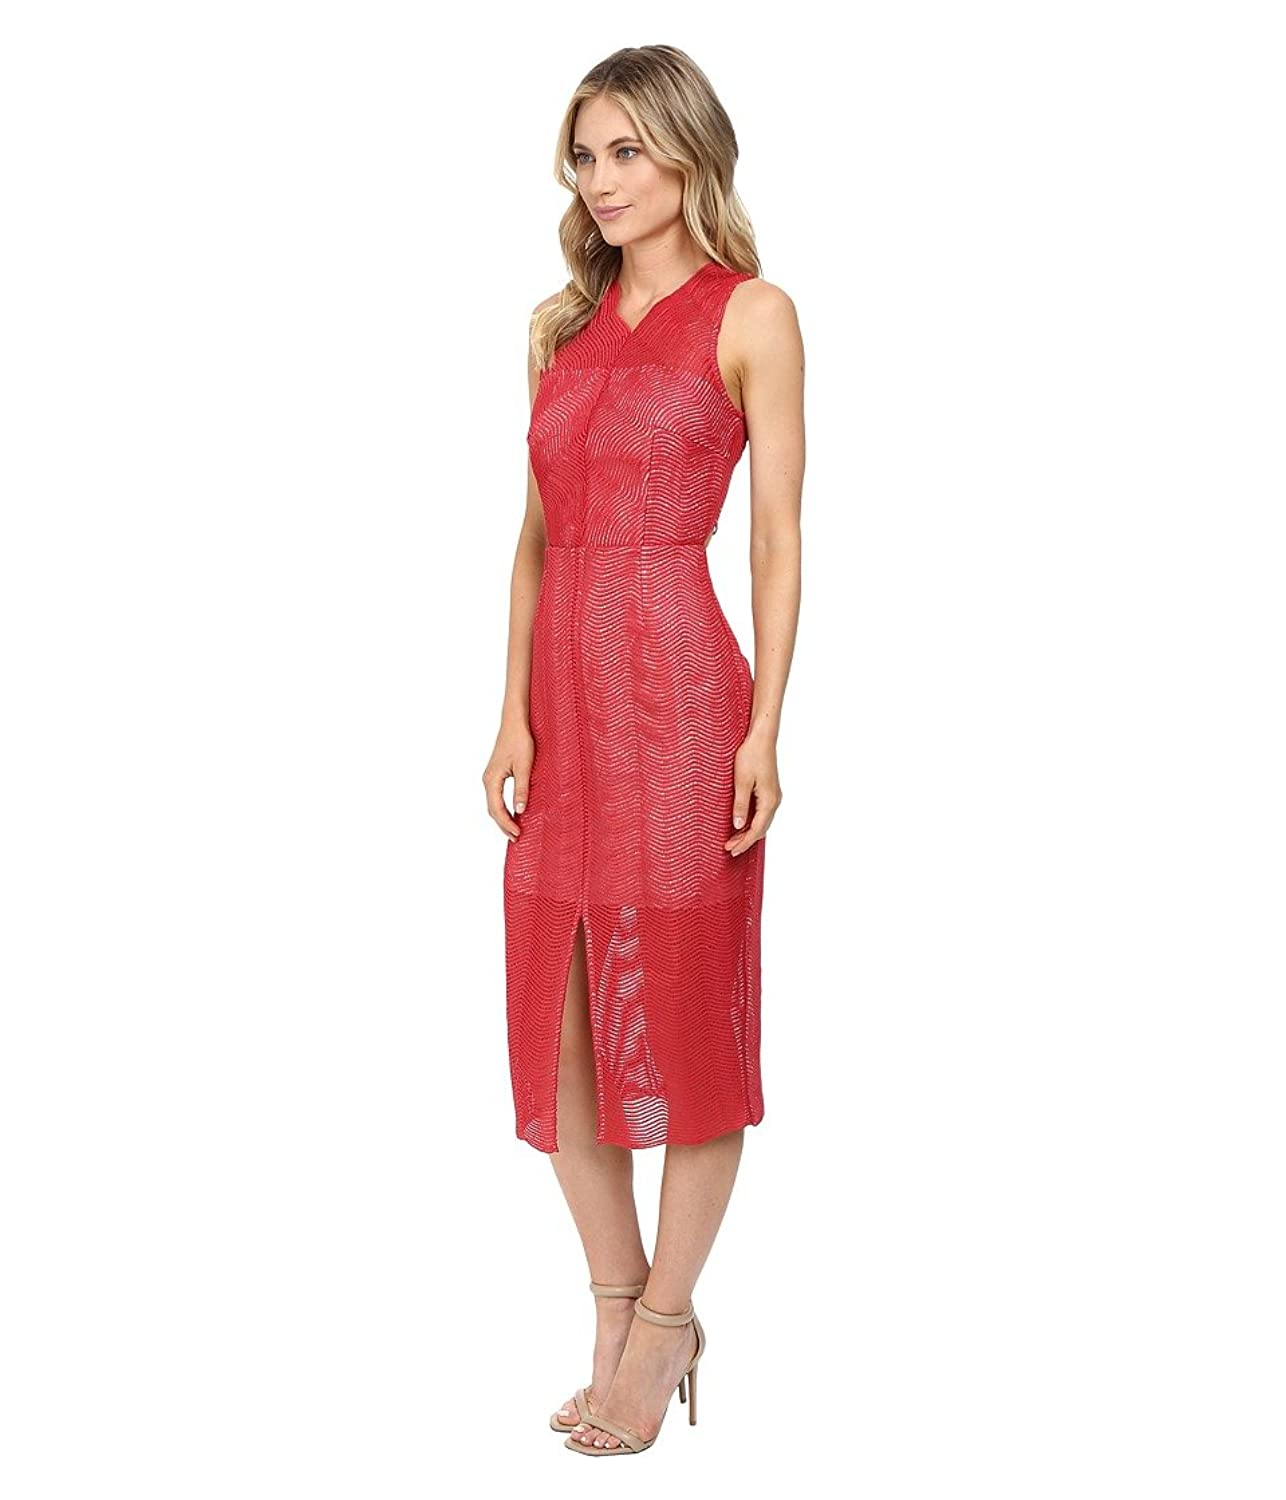 Think Twice Lace Dress - Red ochre Keepsake the Label GVH9n0